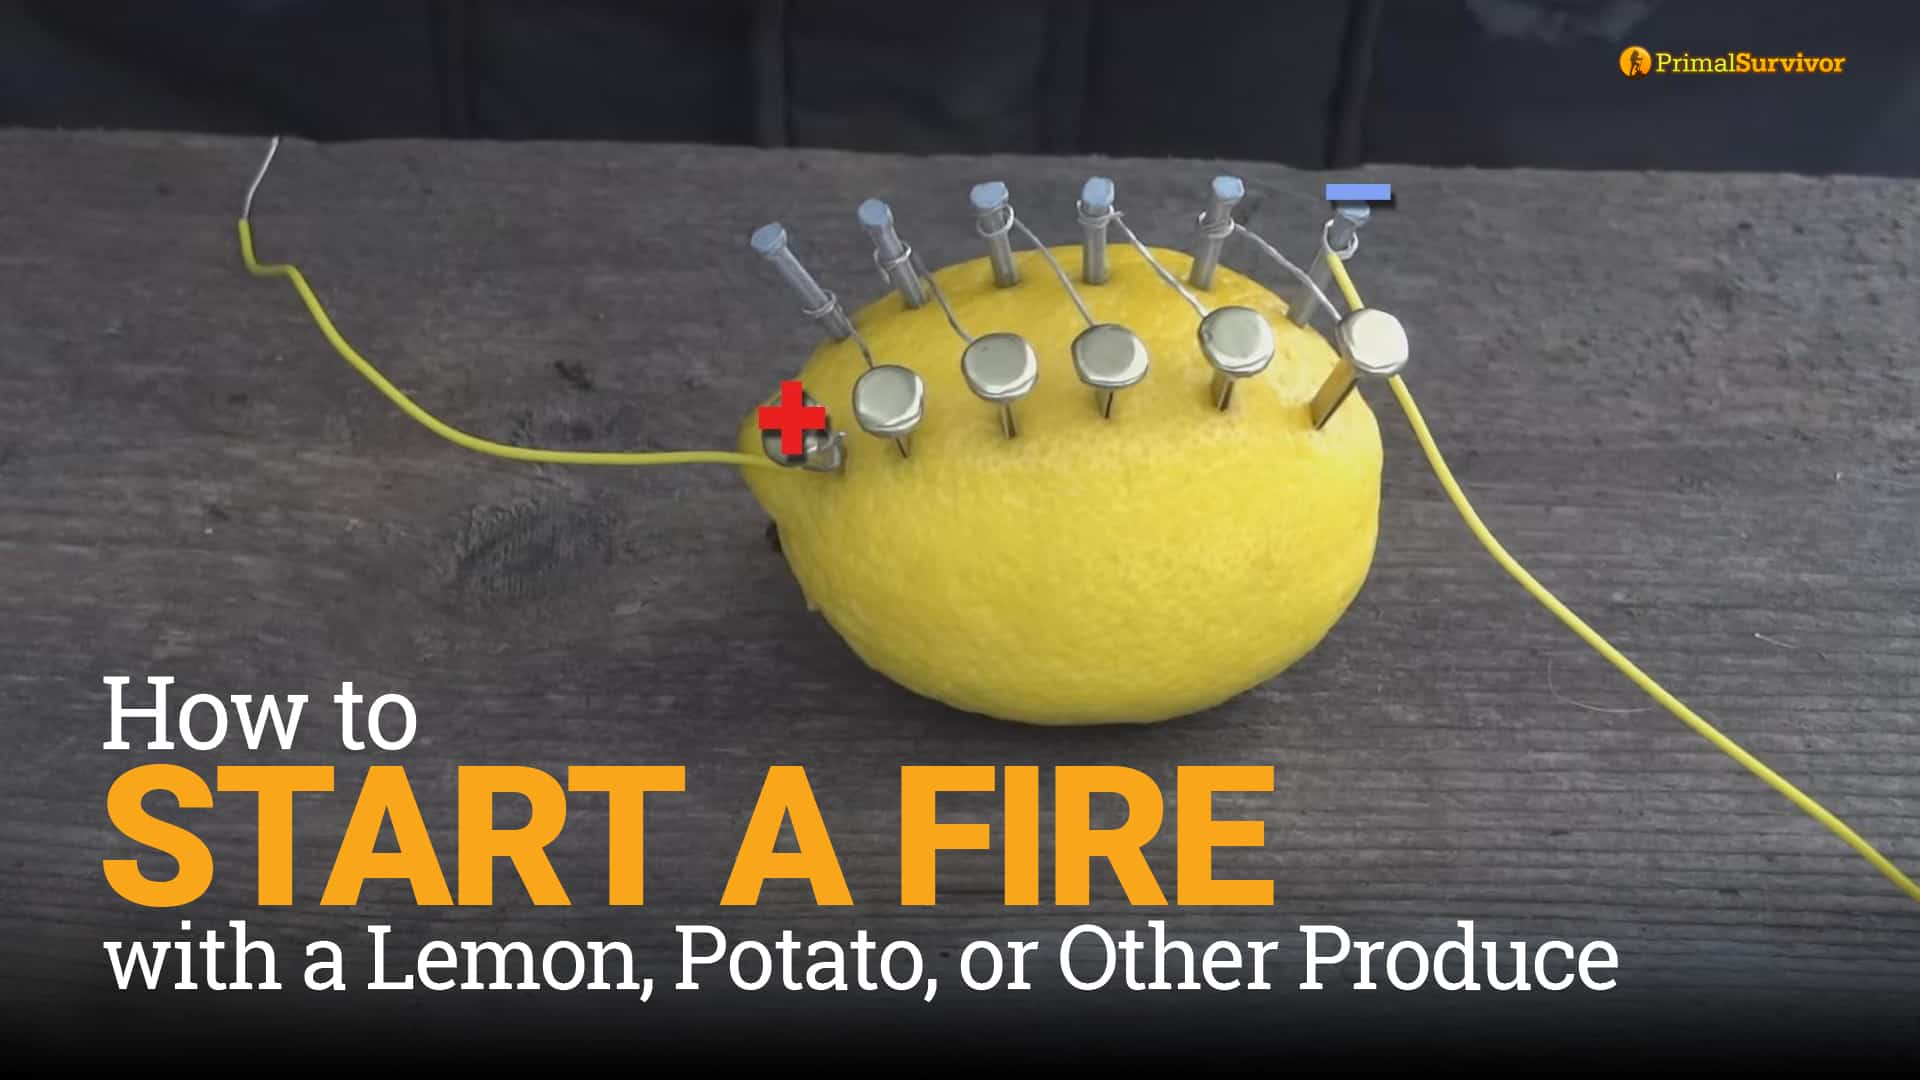 How to Start a Fire with a Lemon, Potato, or Other Produce post image